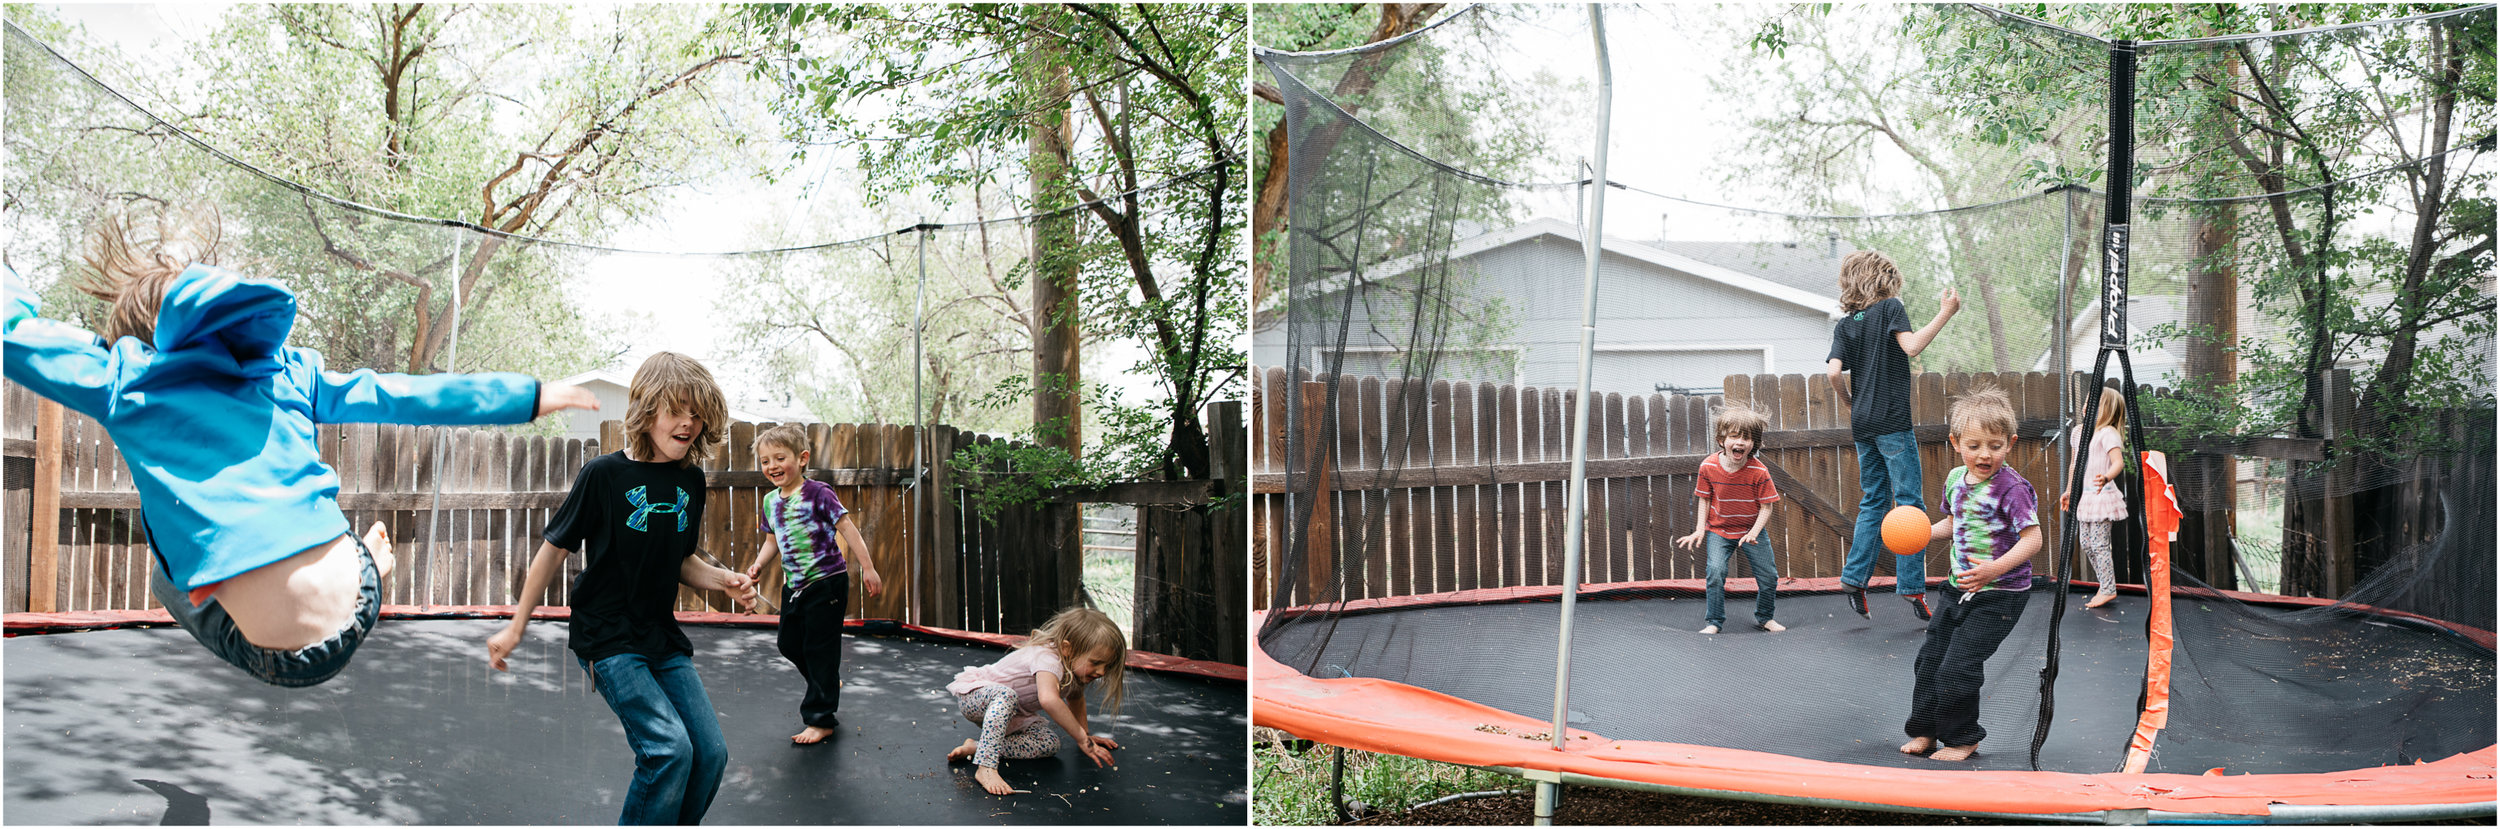 Kids playing on trampoline, Pittsburgh Pa lifestyle photographer.jpg